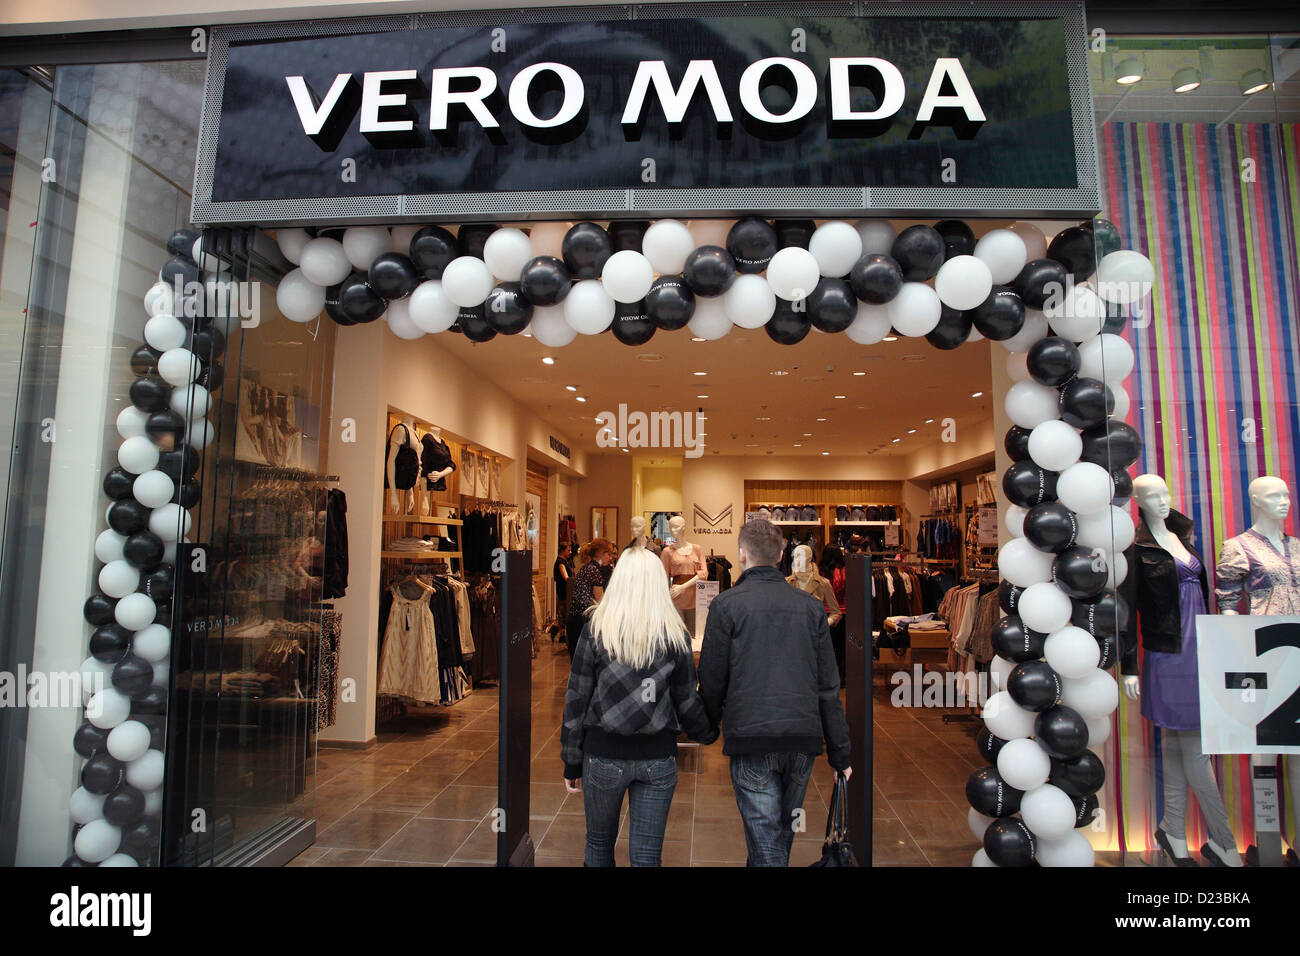 Vero moda photos vero moda images alamy